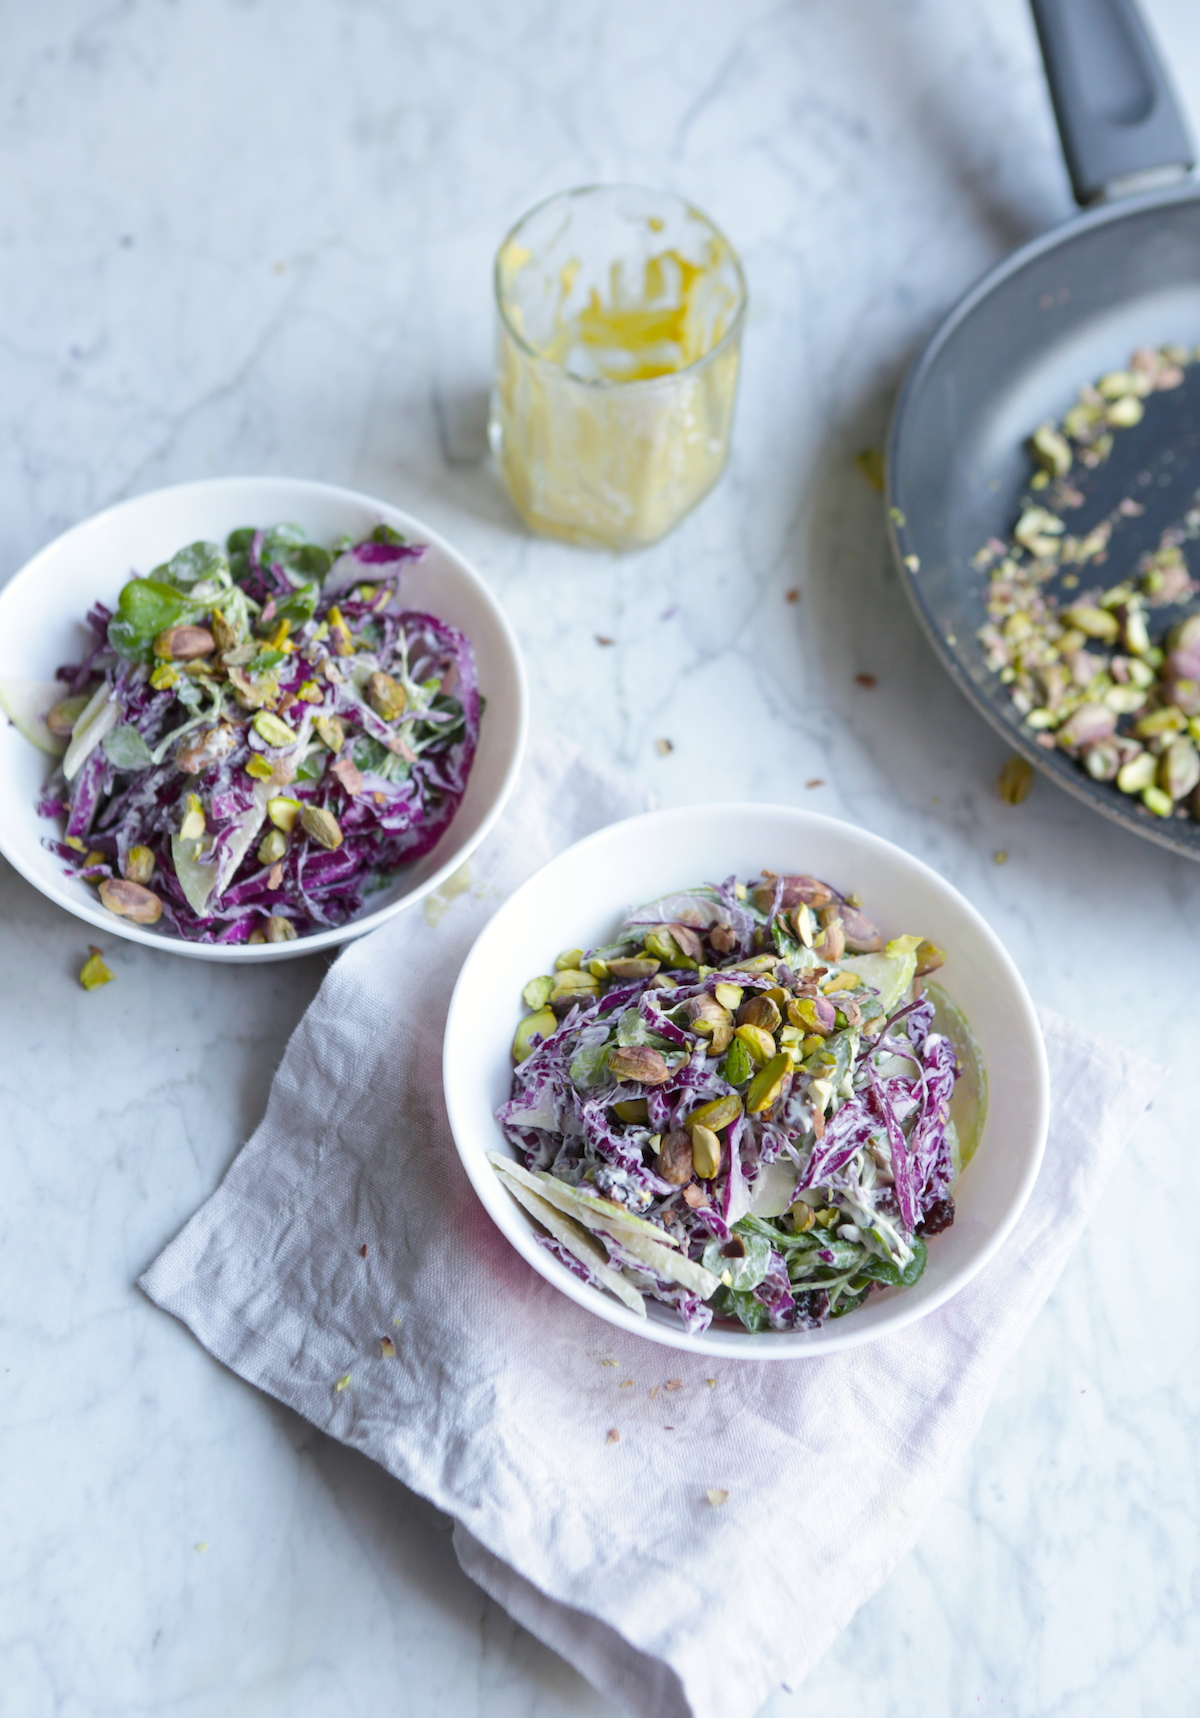 VEGAN CRUNCHY & CREAMY MUSTARD COLESLAW WITH TOASTED PISTACHIOS